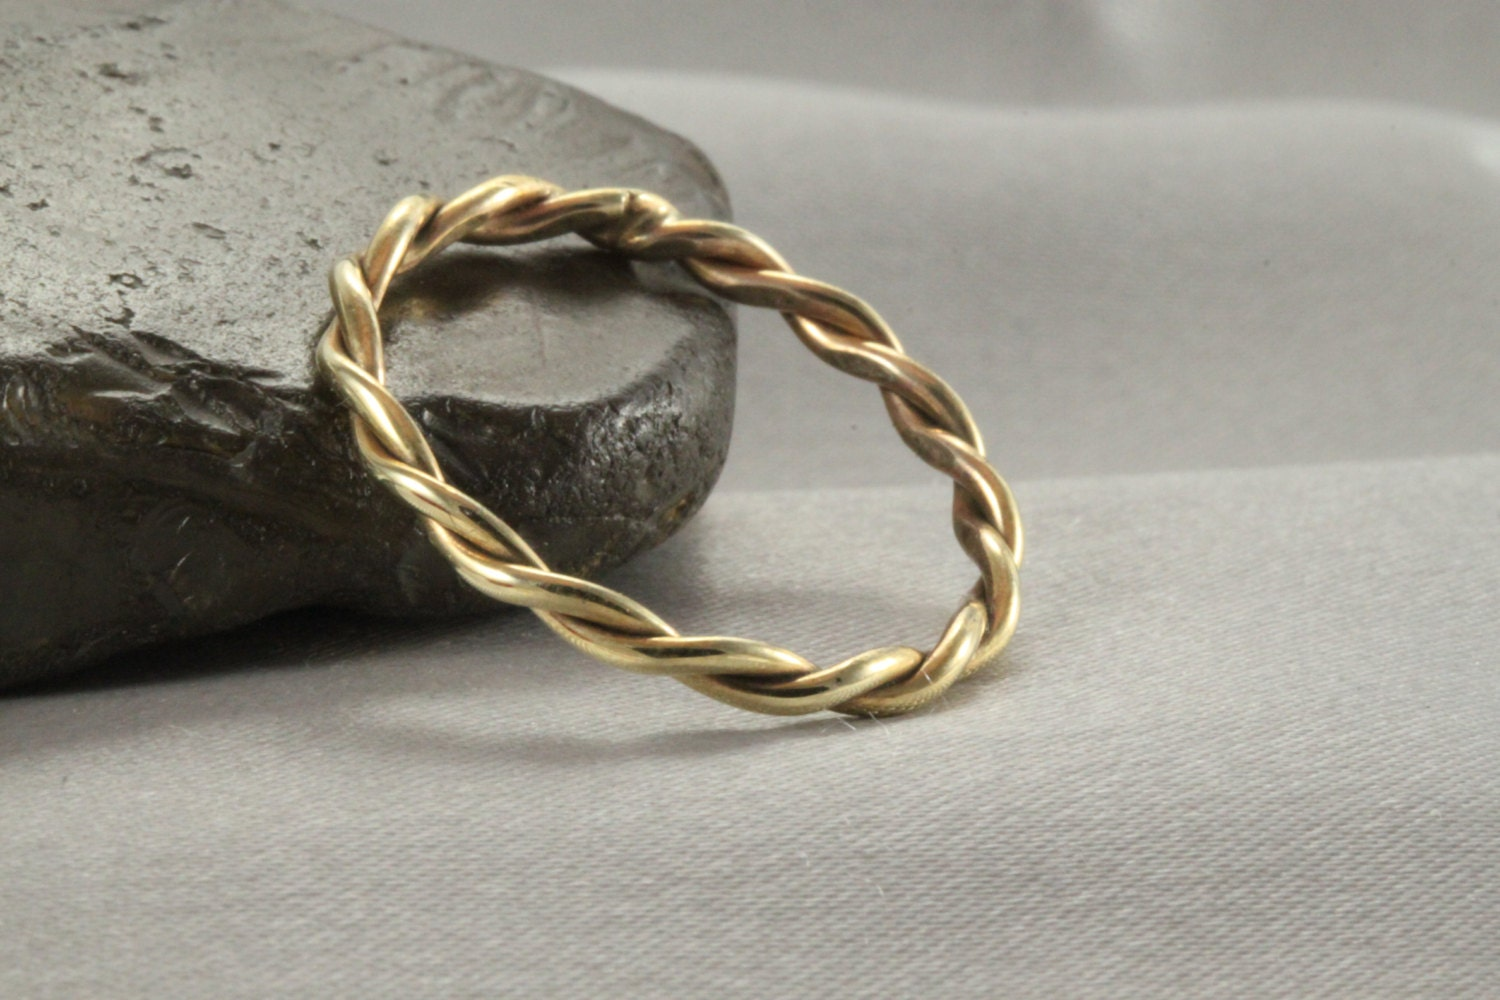 wedding band solid 14k gold yellow gold twist ring. Black Bedroom Furniture Sets. Home Design Ideas